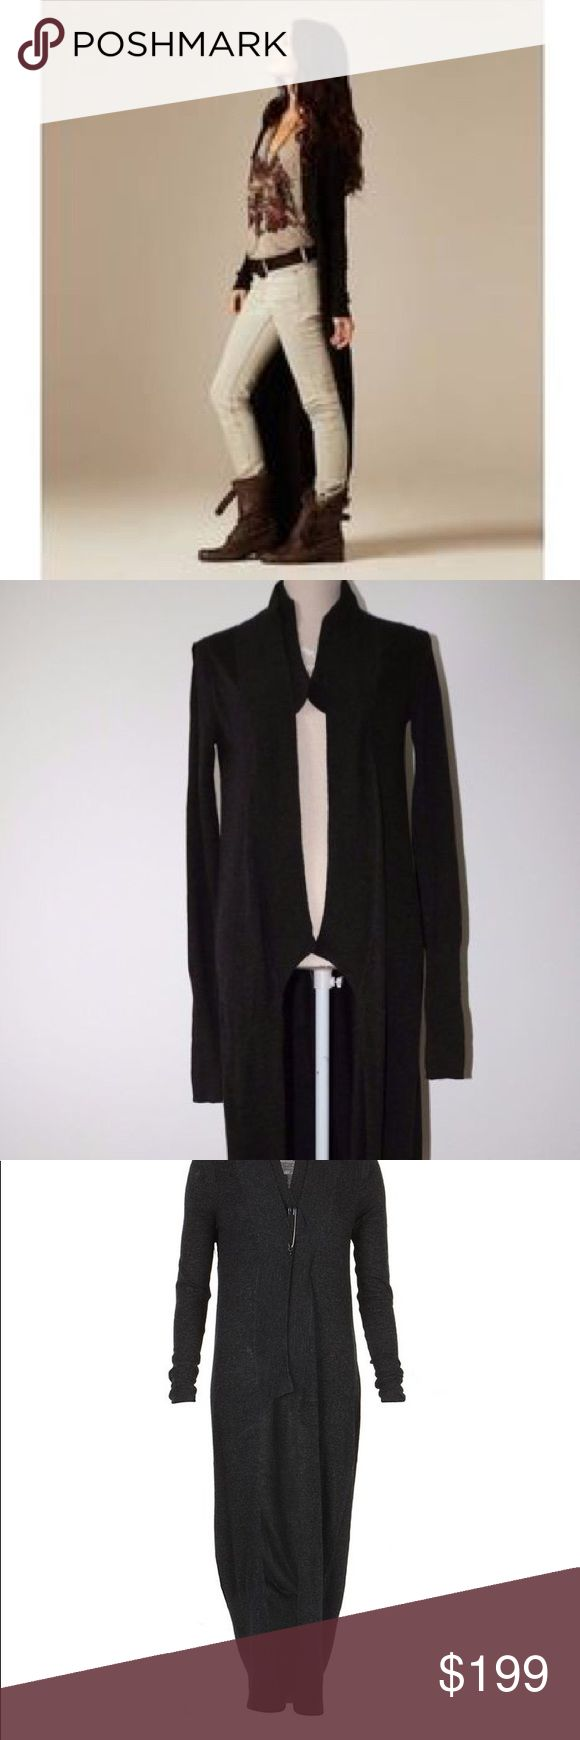 All Saints Dagma Maxi Cardigan Wool Sweater 10 This is an authentic All Saints Dagda maxi cardigan. Size US 10. Dark chocolate. Has large safety pin for closure. Great condition. Made of 33% viscose 24% nylon 10%  cotton 15% lambs wool 5% cashmere 1% angora. All Saints Sweaters Cardigans